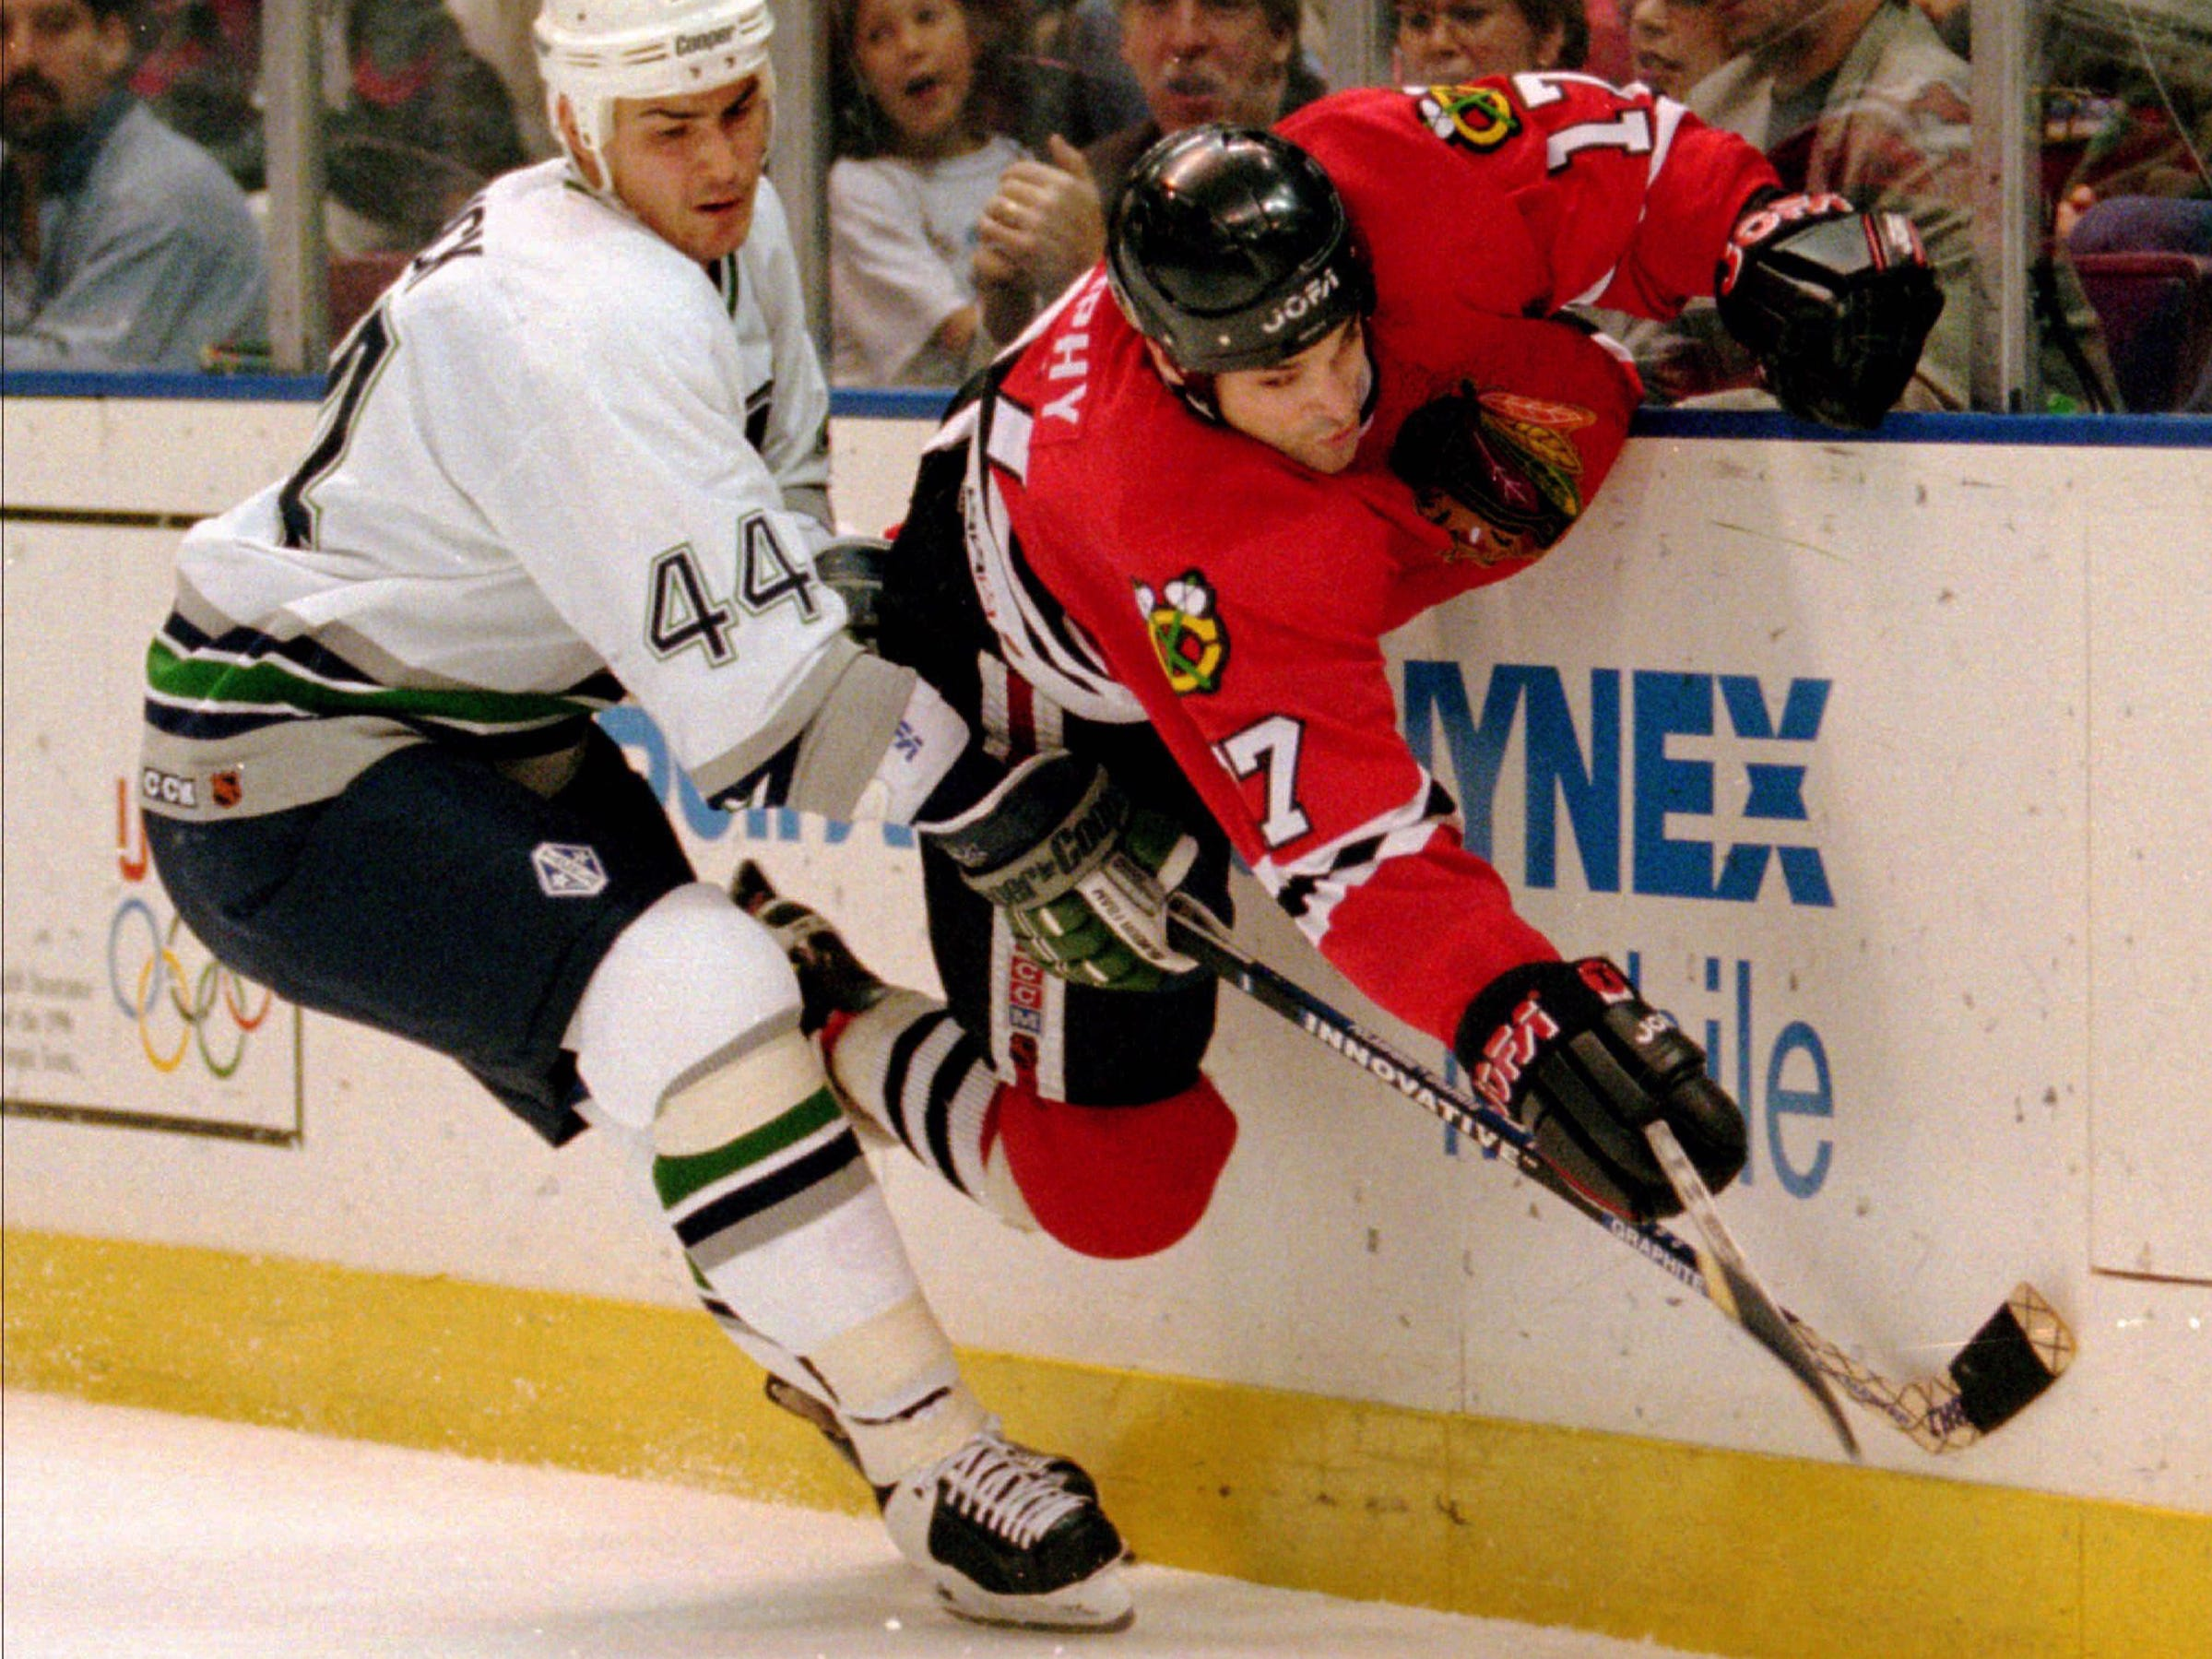 Chicago Blackhawks winger Joe Murphy, right, goes flying against the boards as he fights for the puck with Hartford Whalers defenseman Gerald Diduck (44) behind the Whalers net during first period NHL action at the Hartford Civic Center, Saturday, Oct. 14, 1995.   HF104